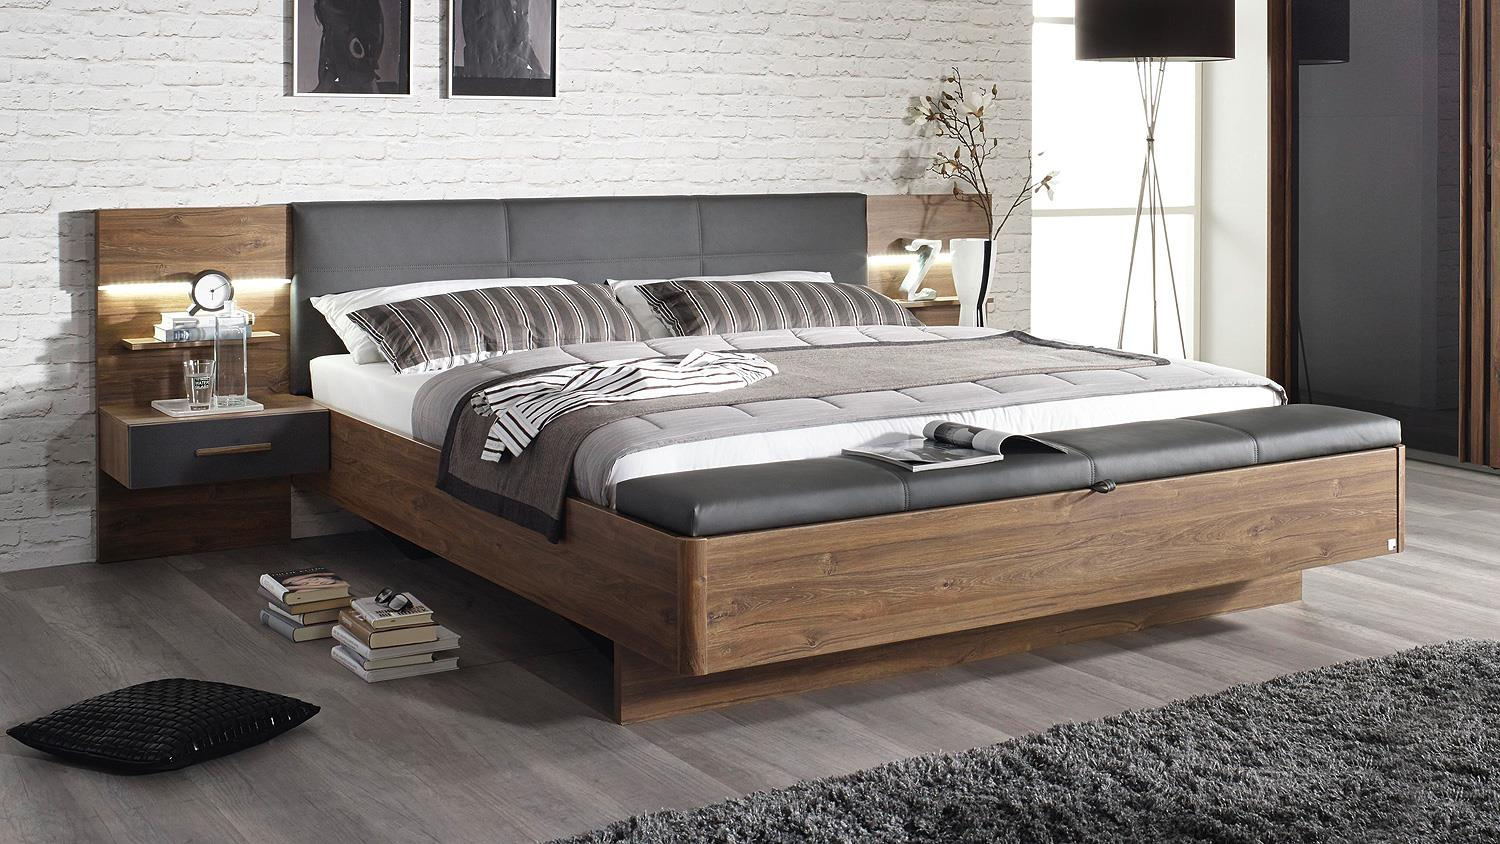 bettanlage mosbach bett eiche stirling grau metallic led 180. Black Bedroom Furniture Sets. Home Design Ideas